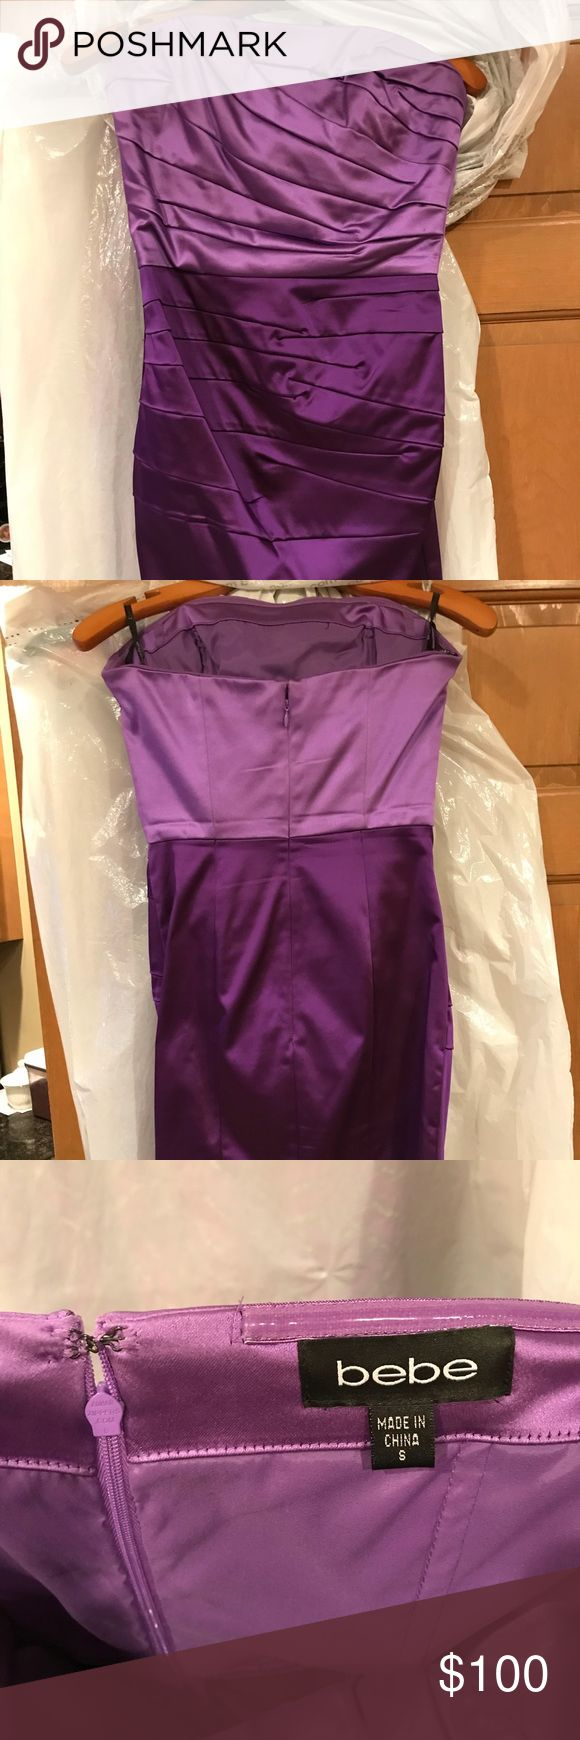 Two Tone Purple Dress by Bebe This is a two tone purple bodycon dress. This dress is very flattering and has ruching in all the right places. The material of this dress is a stretchy sating that confirms to all body shapes. This dress is in excellent condition. bebe Dresses Prom